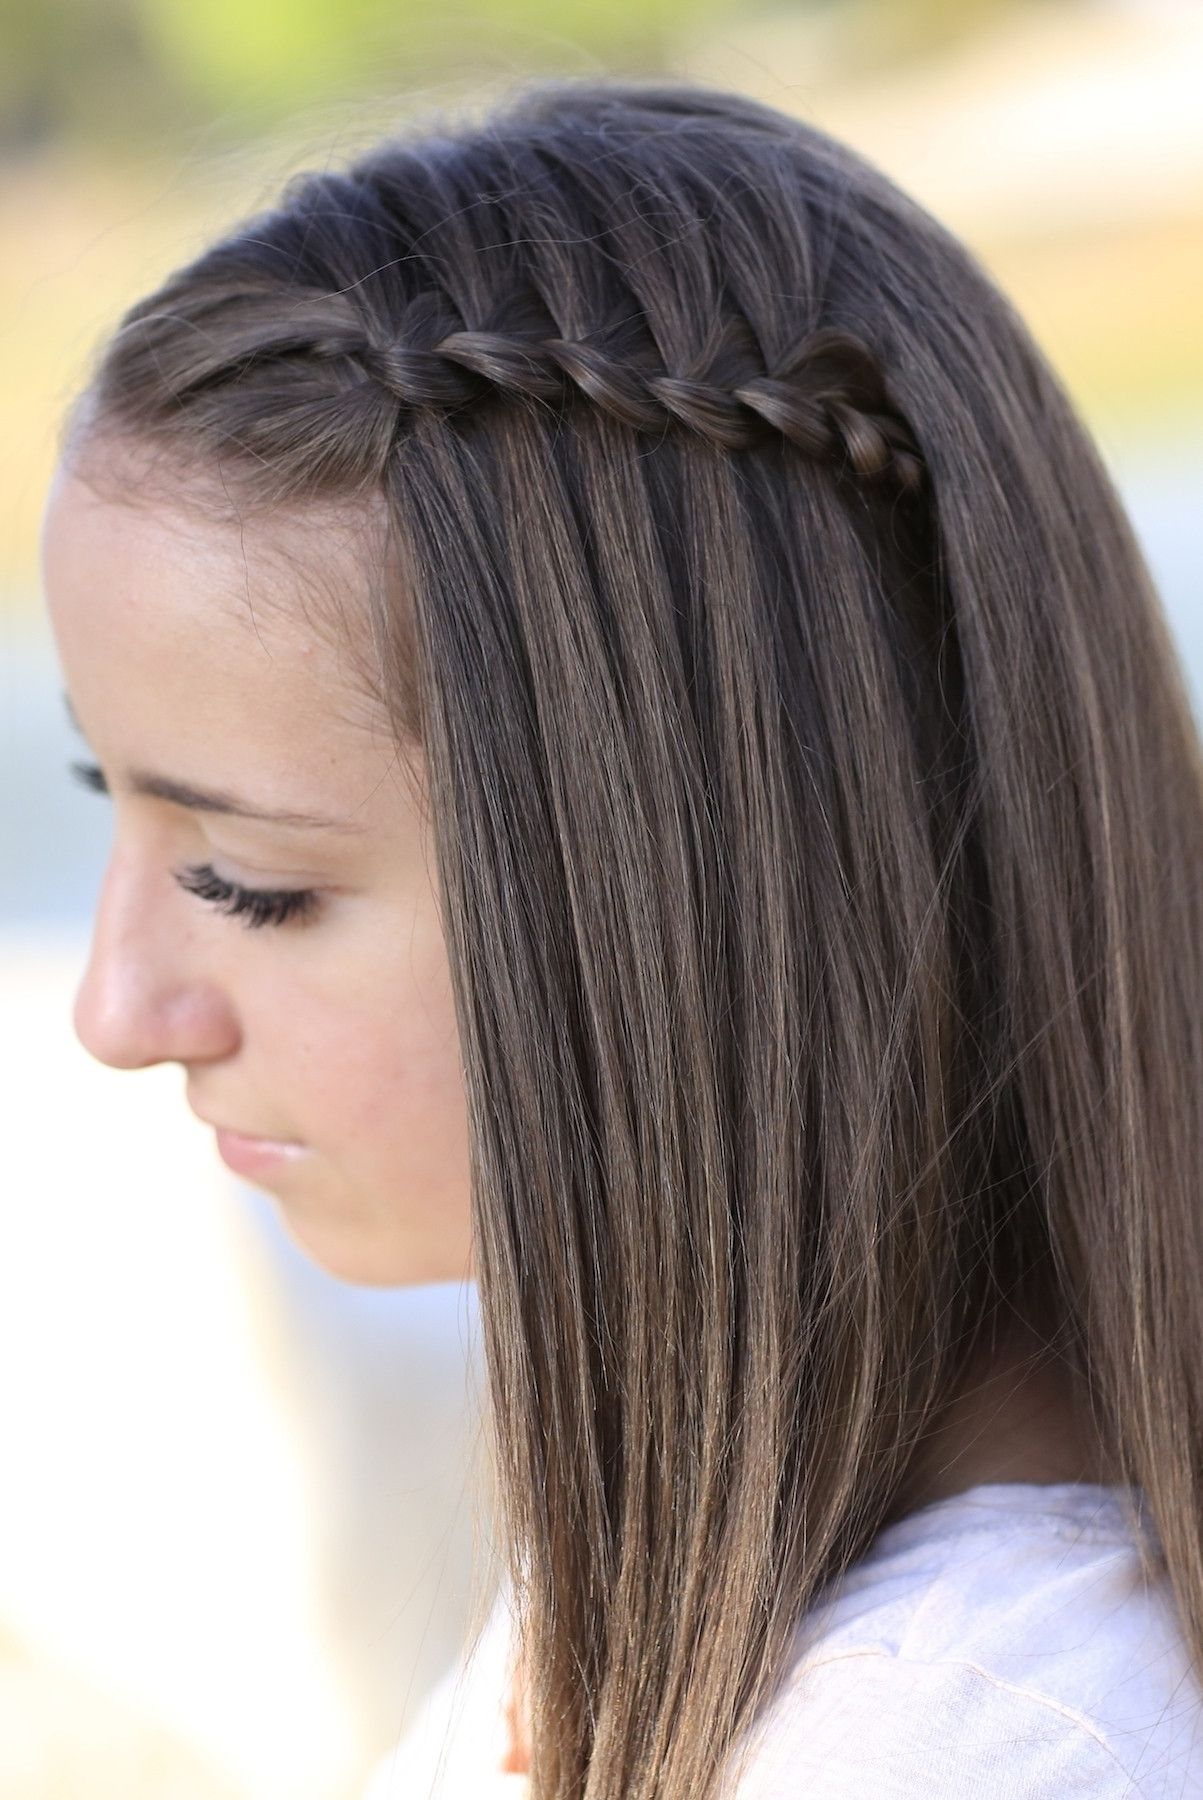 20 Best Haircuts For 12 Year Old Girls Elegant Hairstyles Hair Styles Old Hairstyles